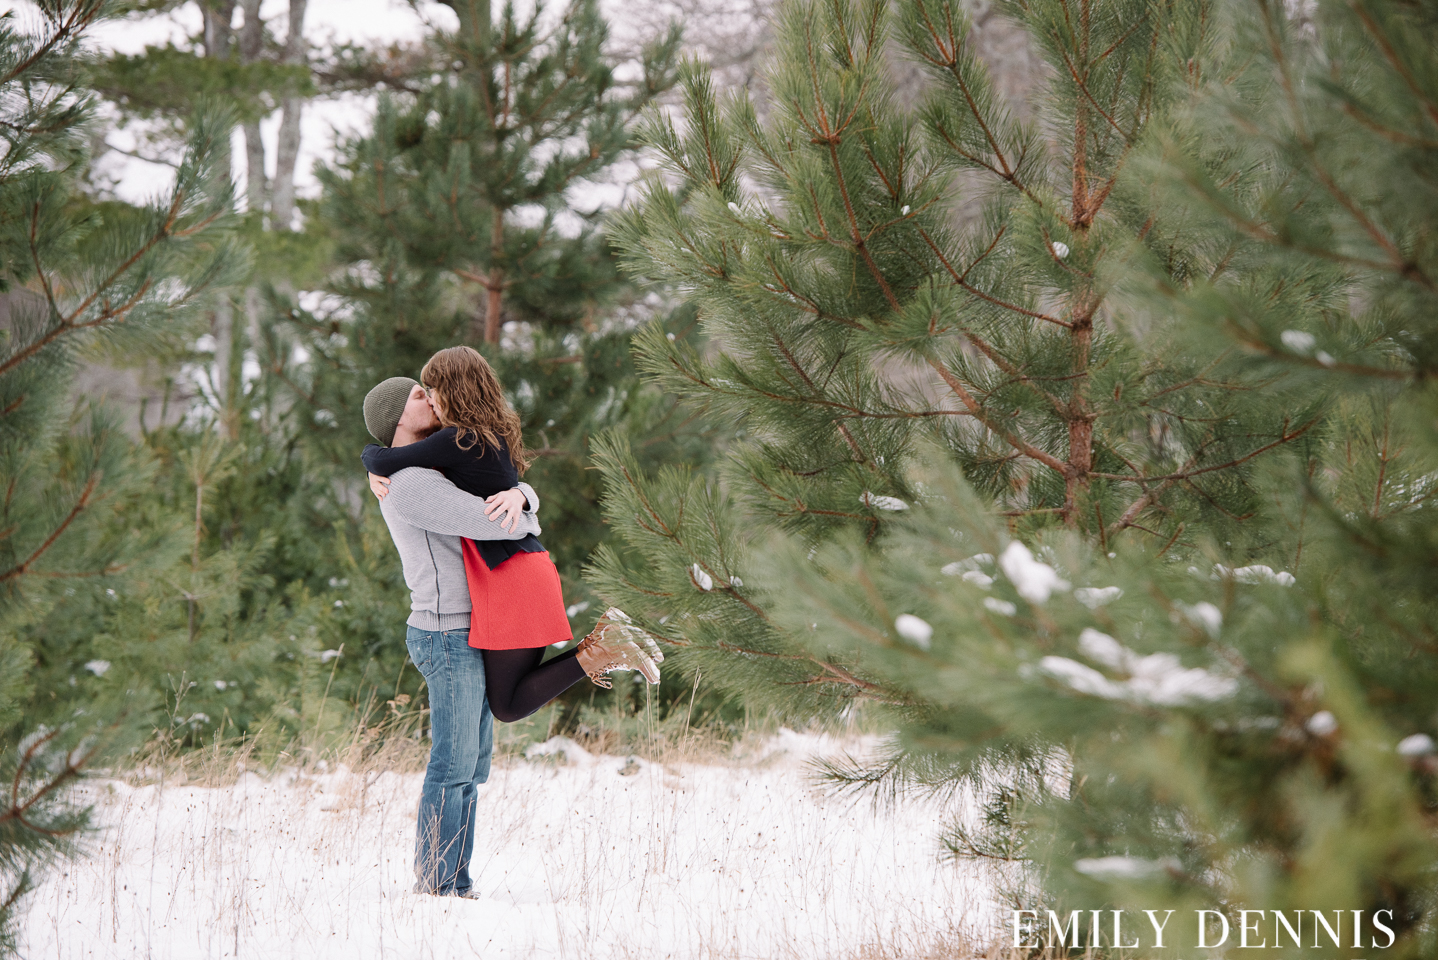 EMILY_DENNIS_PHOTOGRAPHY_engagement-9